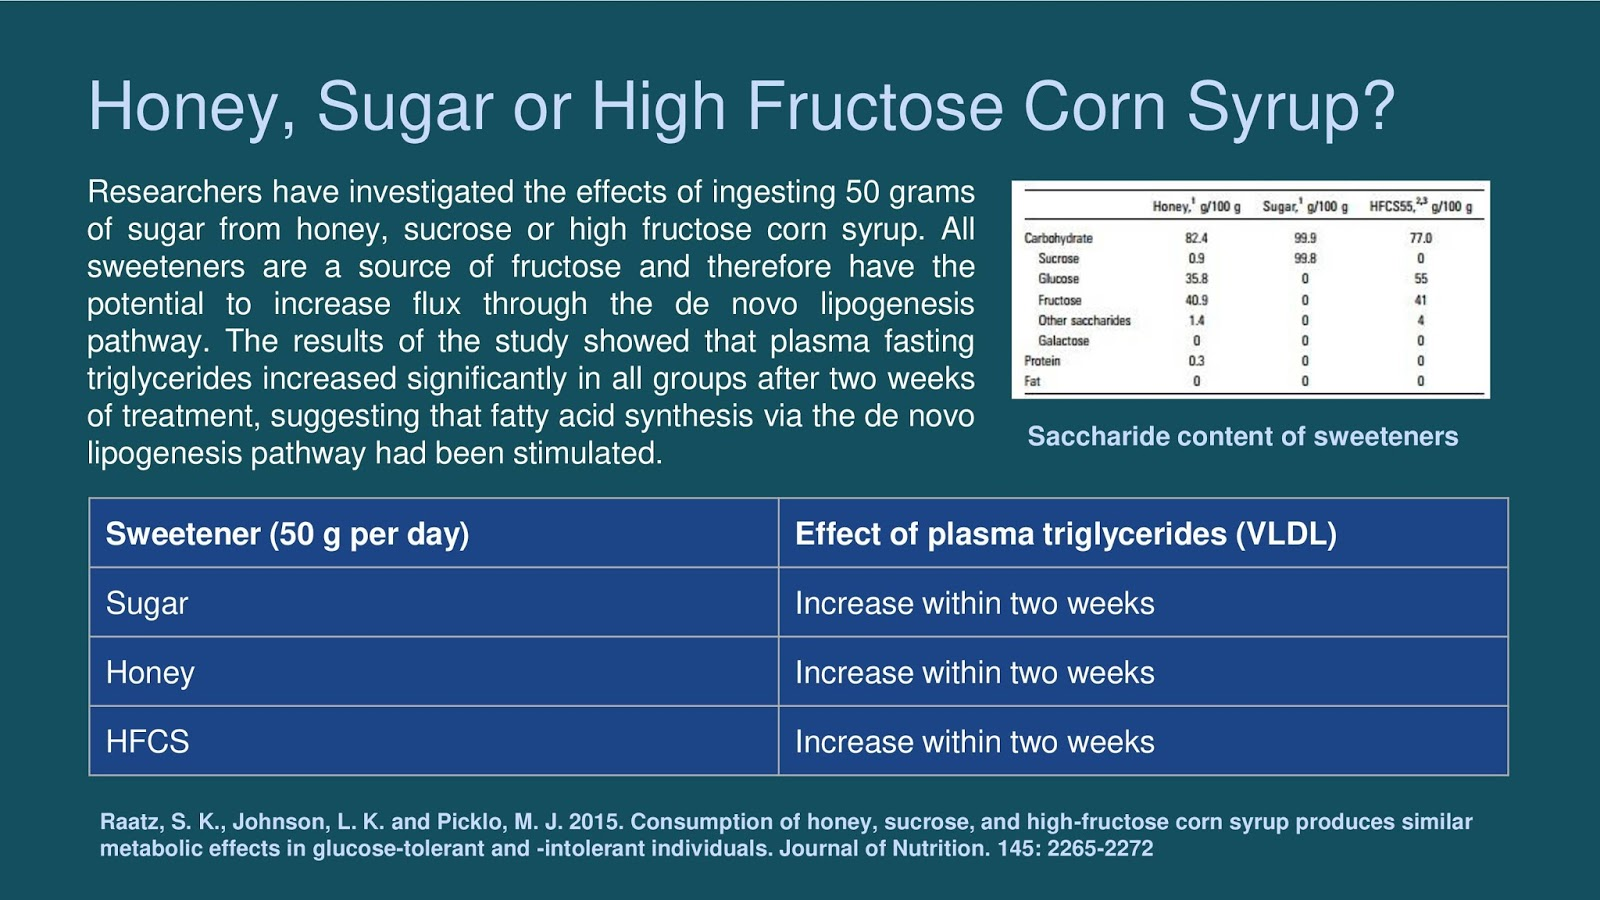 high fructose corn syrup research papers The murky world of high-fructose corn syrup leave a comment the development of the hfcs process came at an opportune time for corn growers refinements of the partial hydrogenation process had made it possible to get better shortenings and margarines out of soybeans than corn.